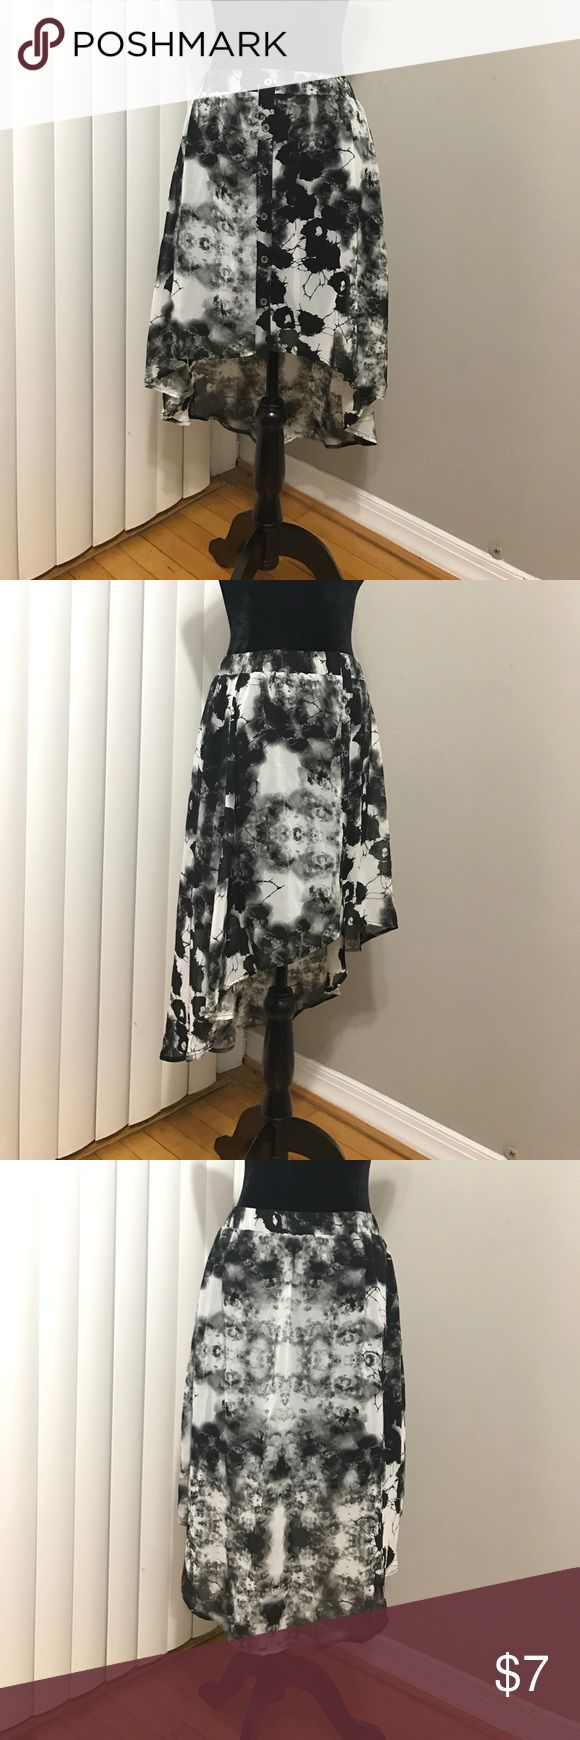 NWOT Hi-Lo Patterned Skirt Never worn, tags removed. Background noise pattern. Elastic stretchy waist band. Skirt and lining made of polyester.  Faux buttons in front. Forever 21 Skirts High Low